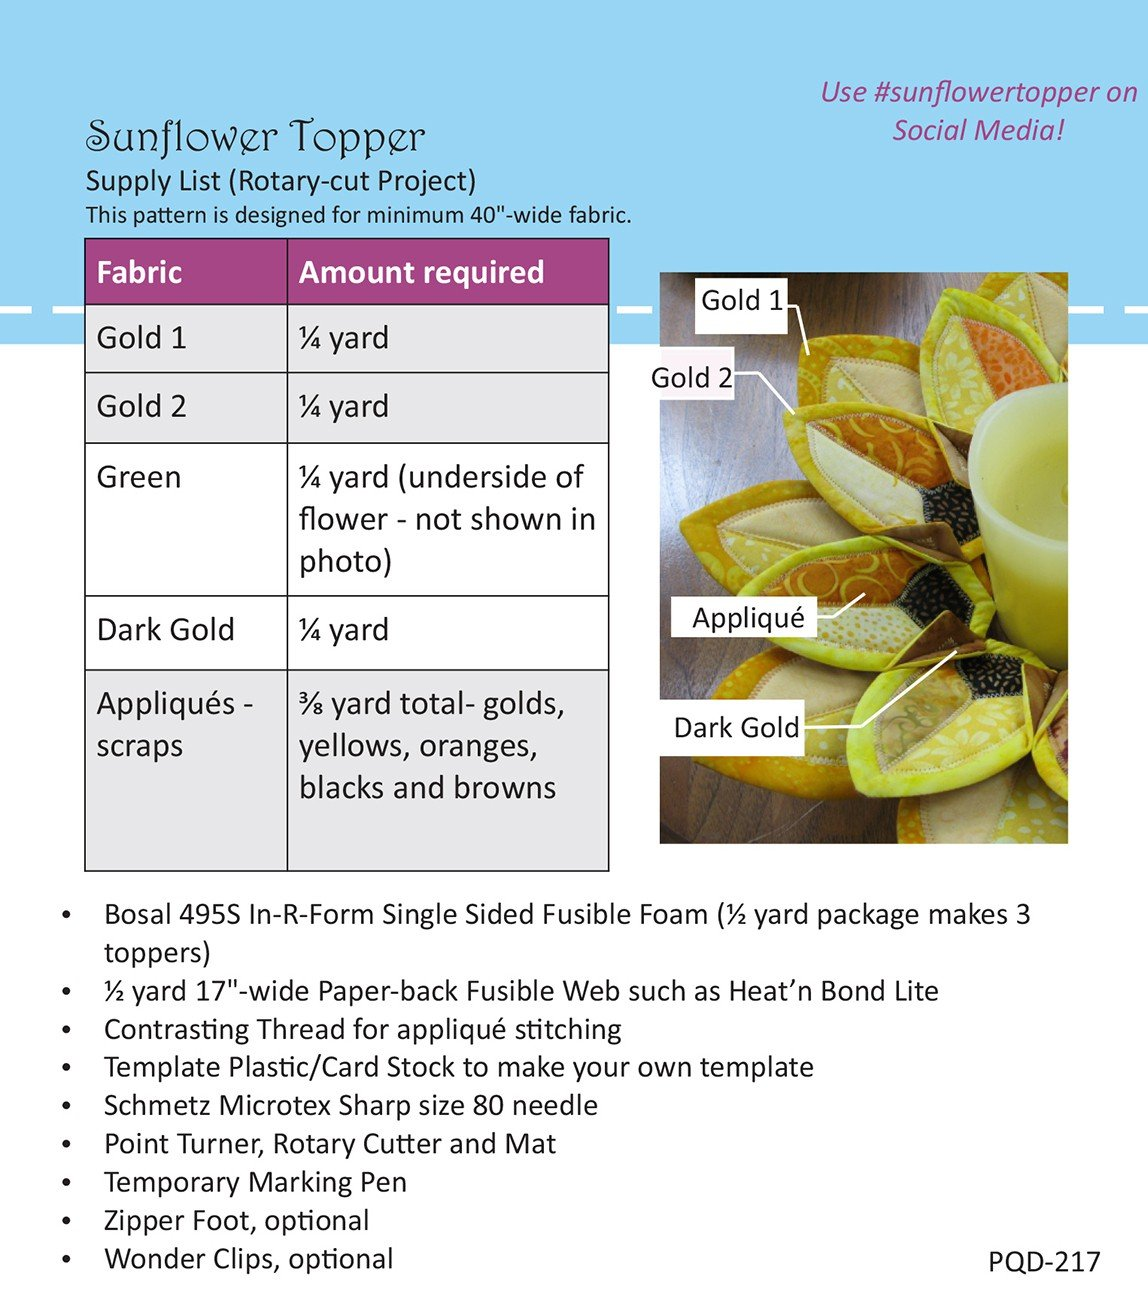 Poorhouse Quilt Designs Sunflower Topper Pattern